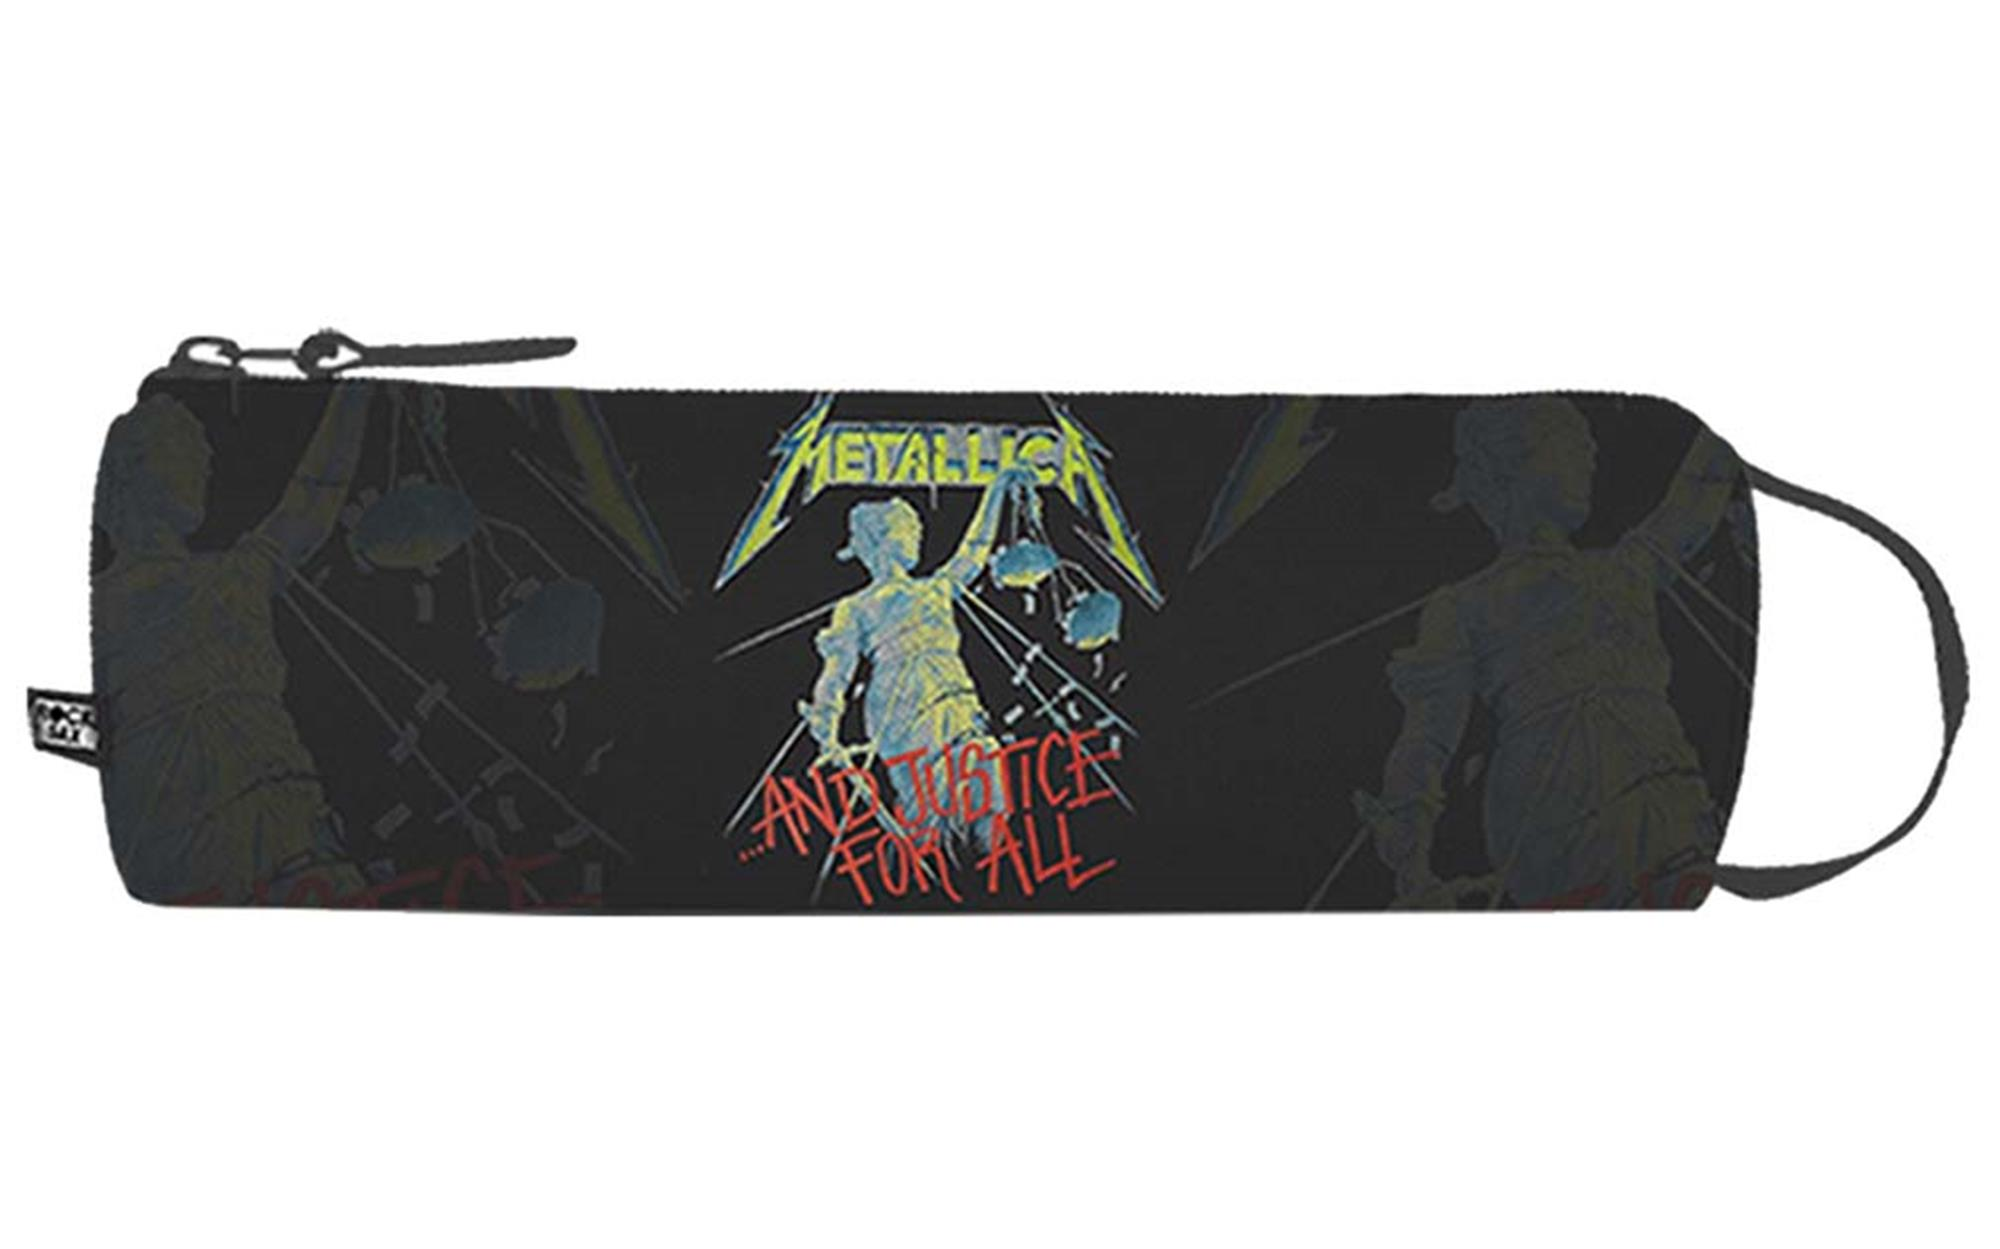 Metallica And Justice for All Pencil Case